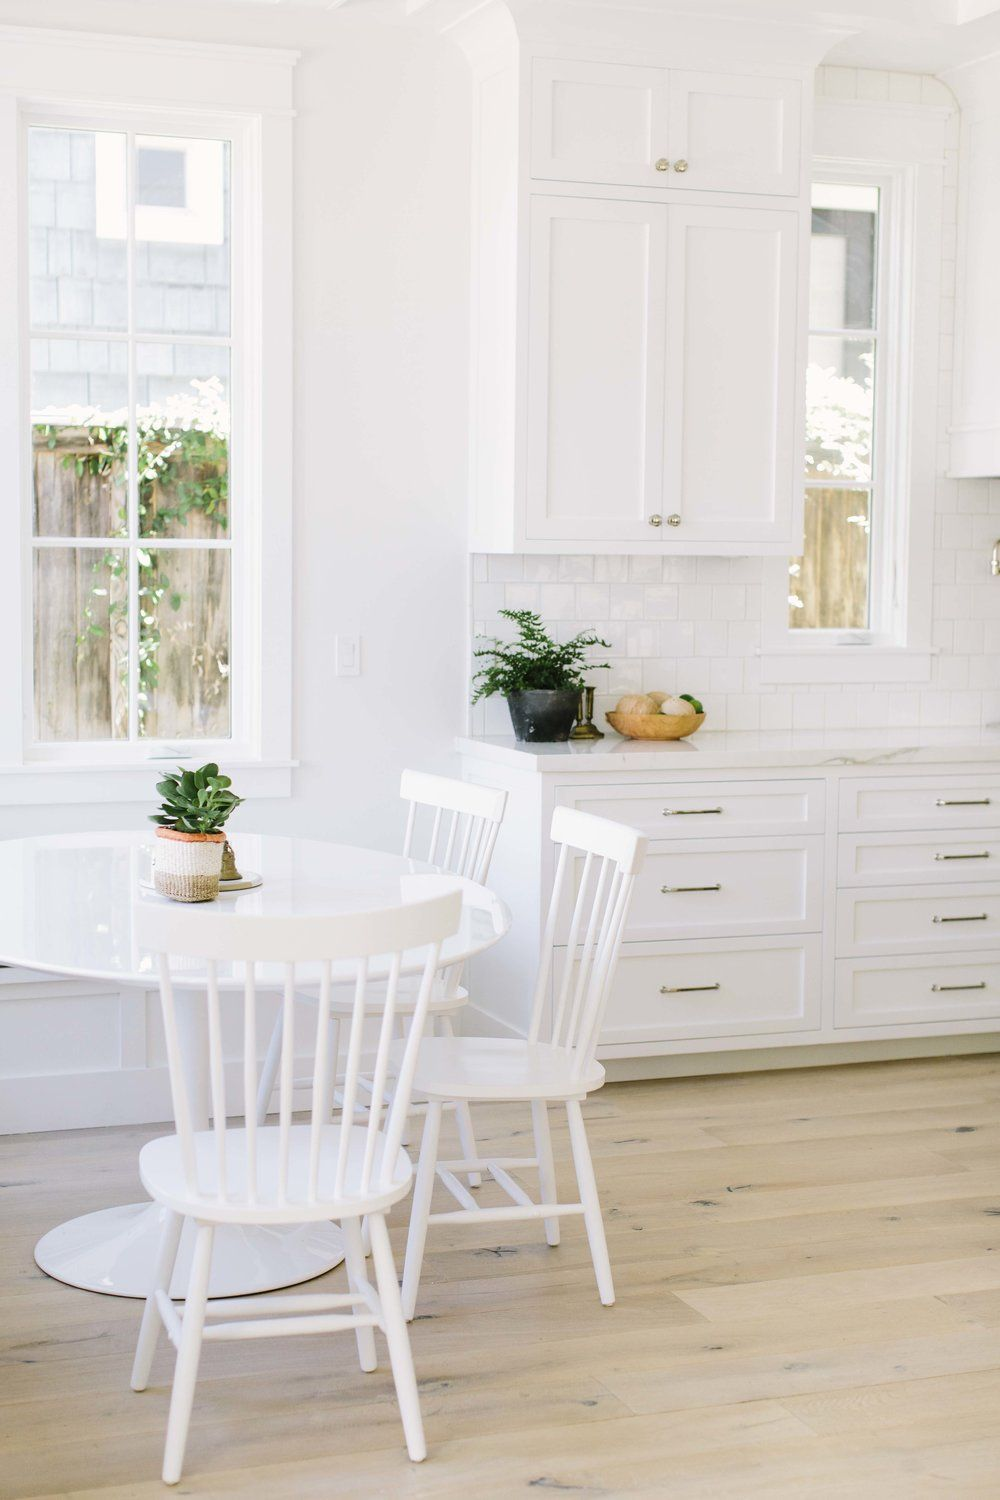 10 Dining Room Chairs Kitchen Stools That Are Easy To Clean